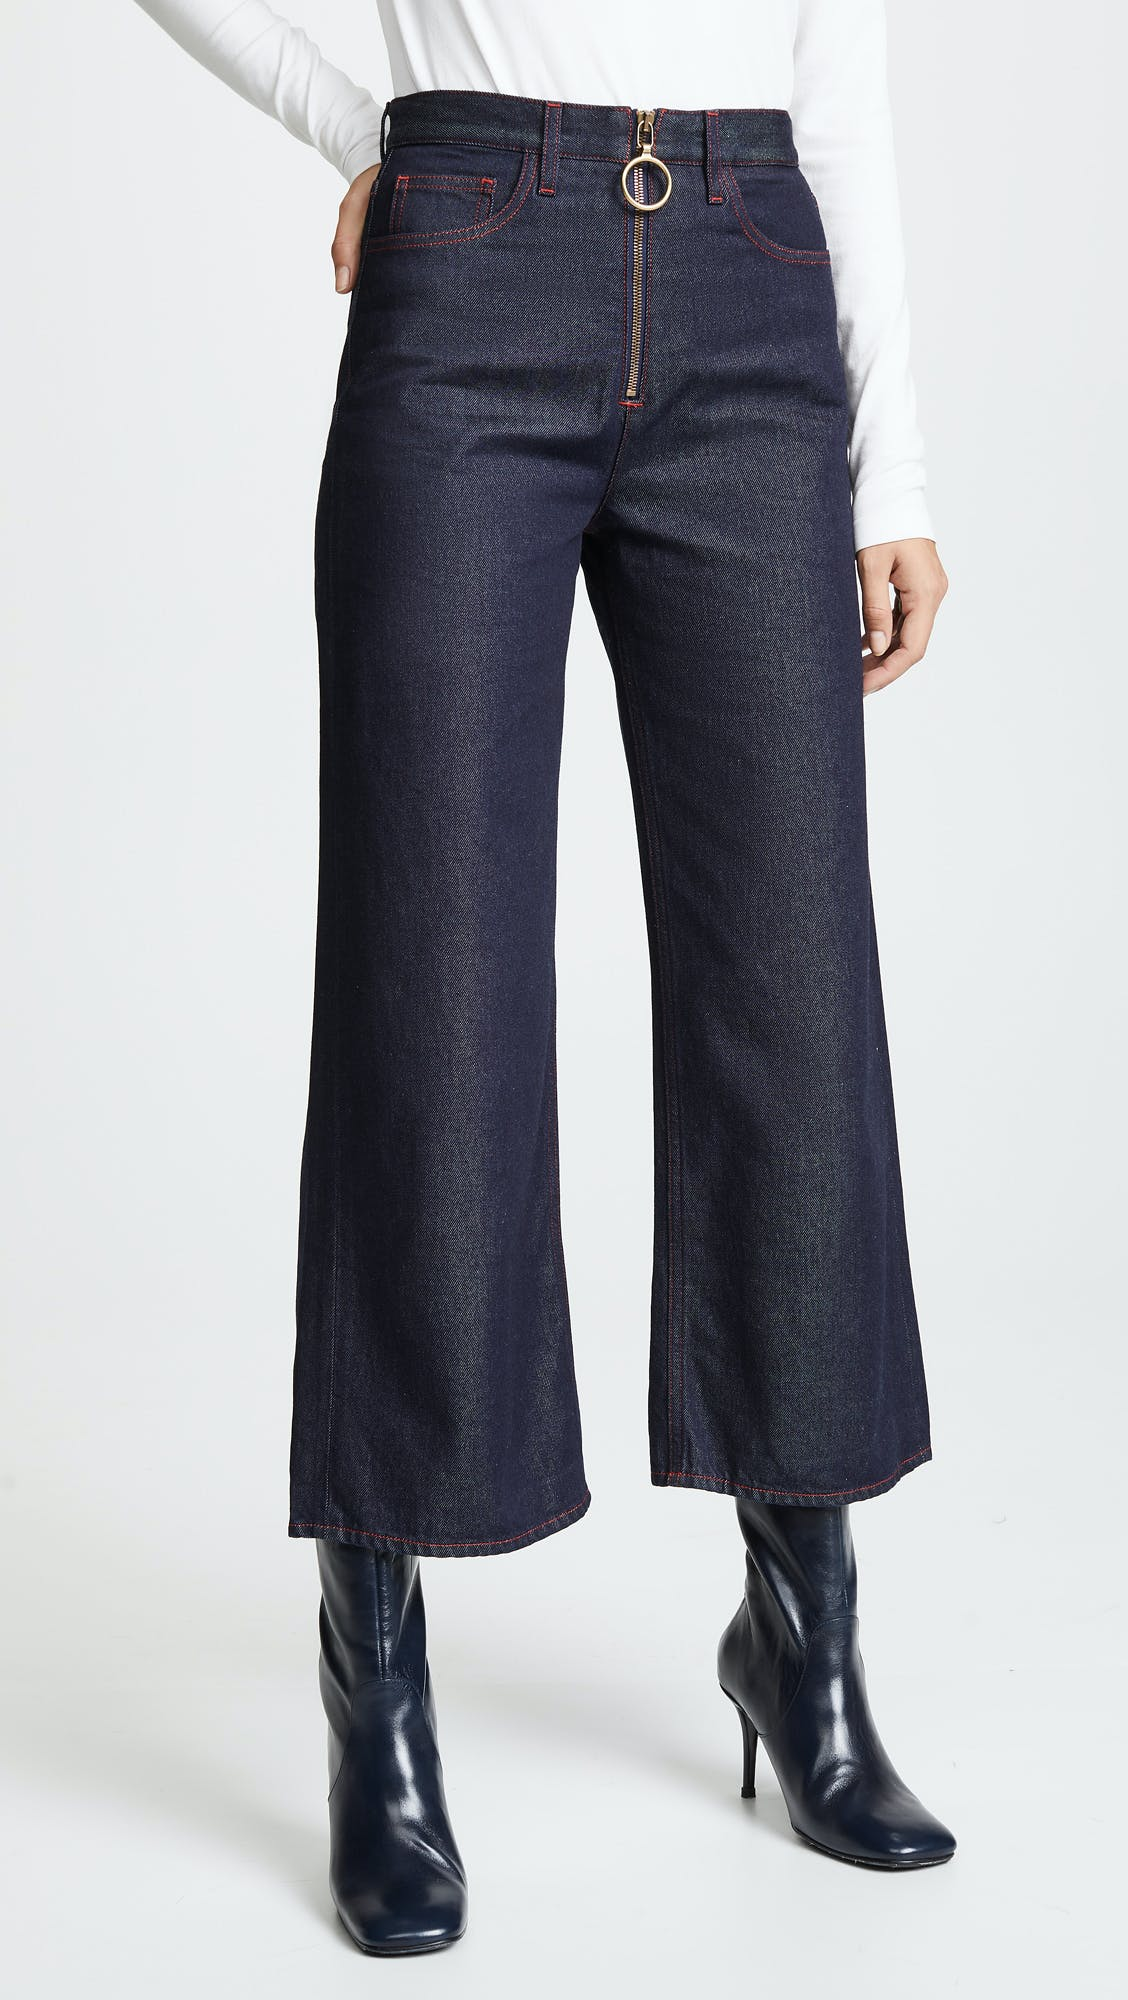 mih jeans, high rise jeans, wide leg jeans, zipper jeans, contrast stitching, cropped jeans